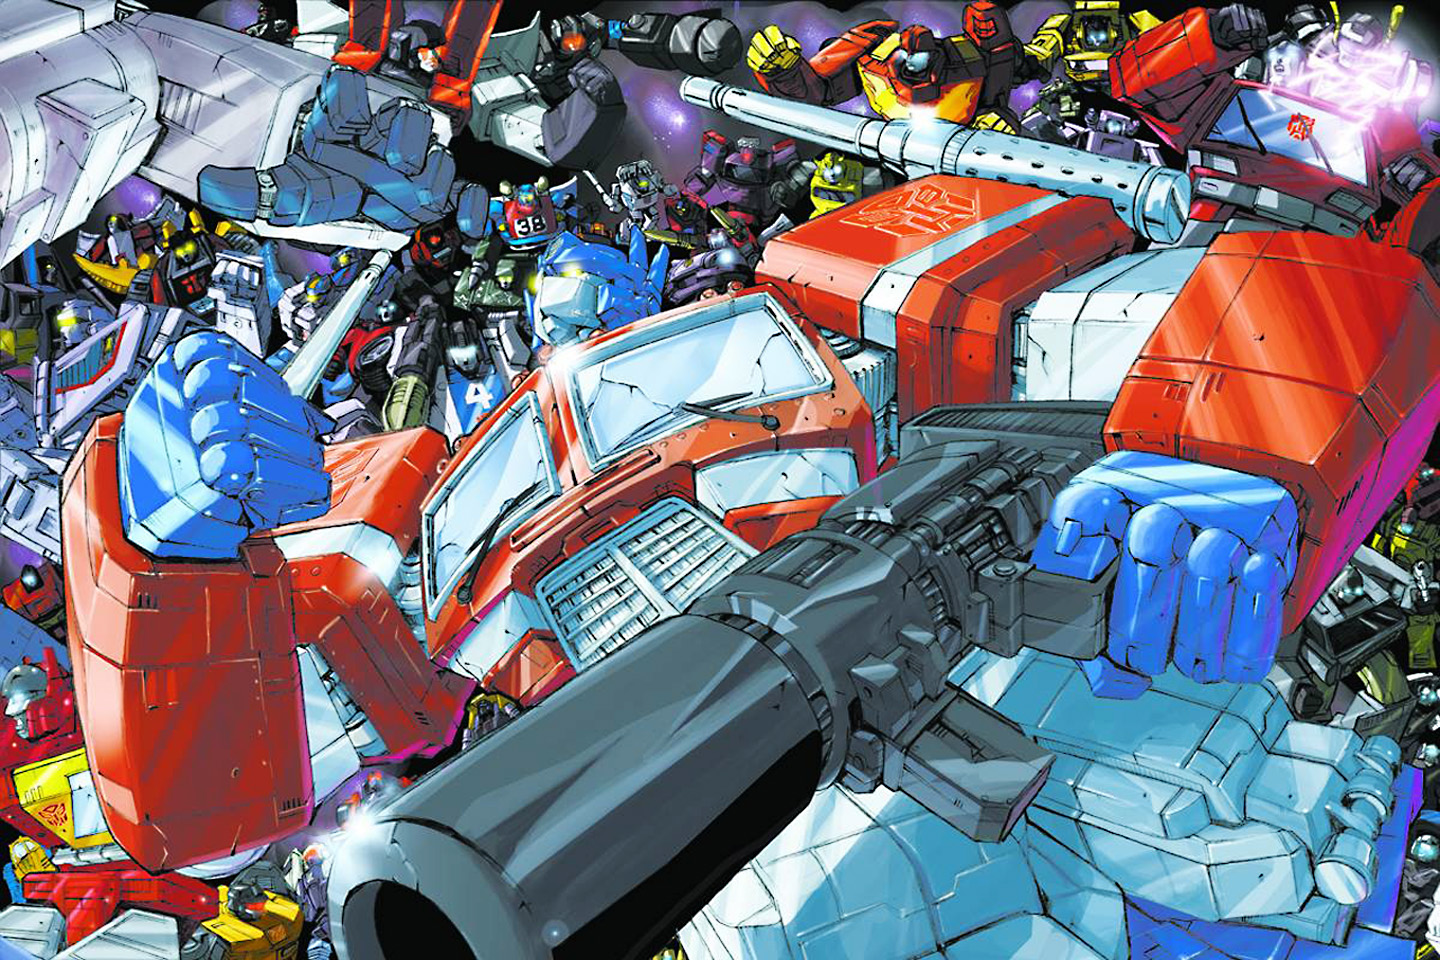 Iphone Shockwave Wallpapers: G1 Decepticons Wallpaper Gallery 4 (1440 X 960 Pixels